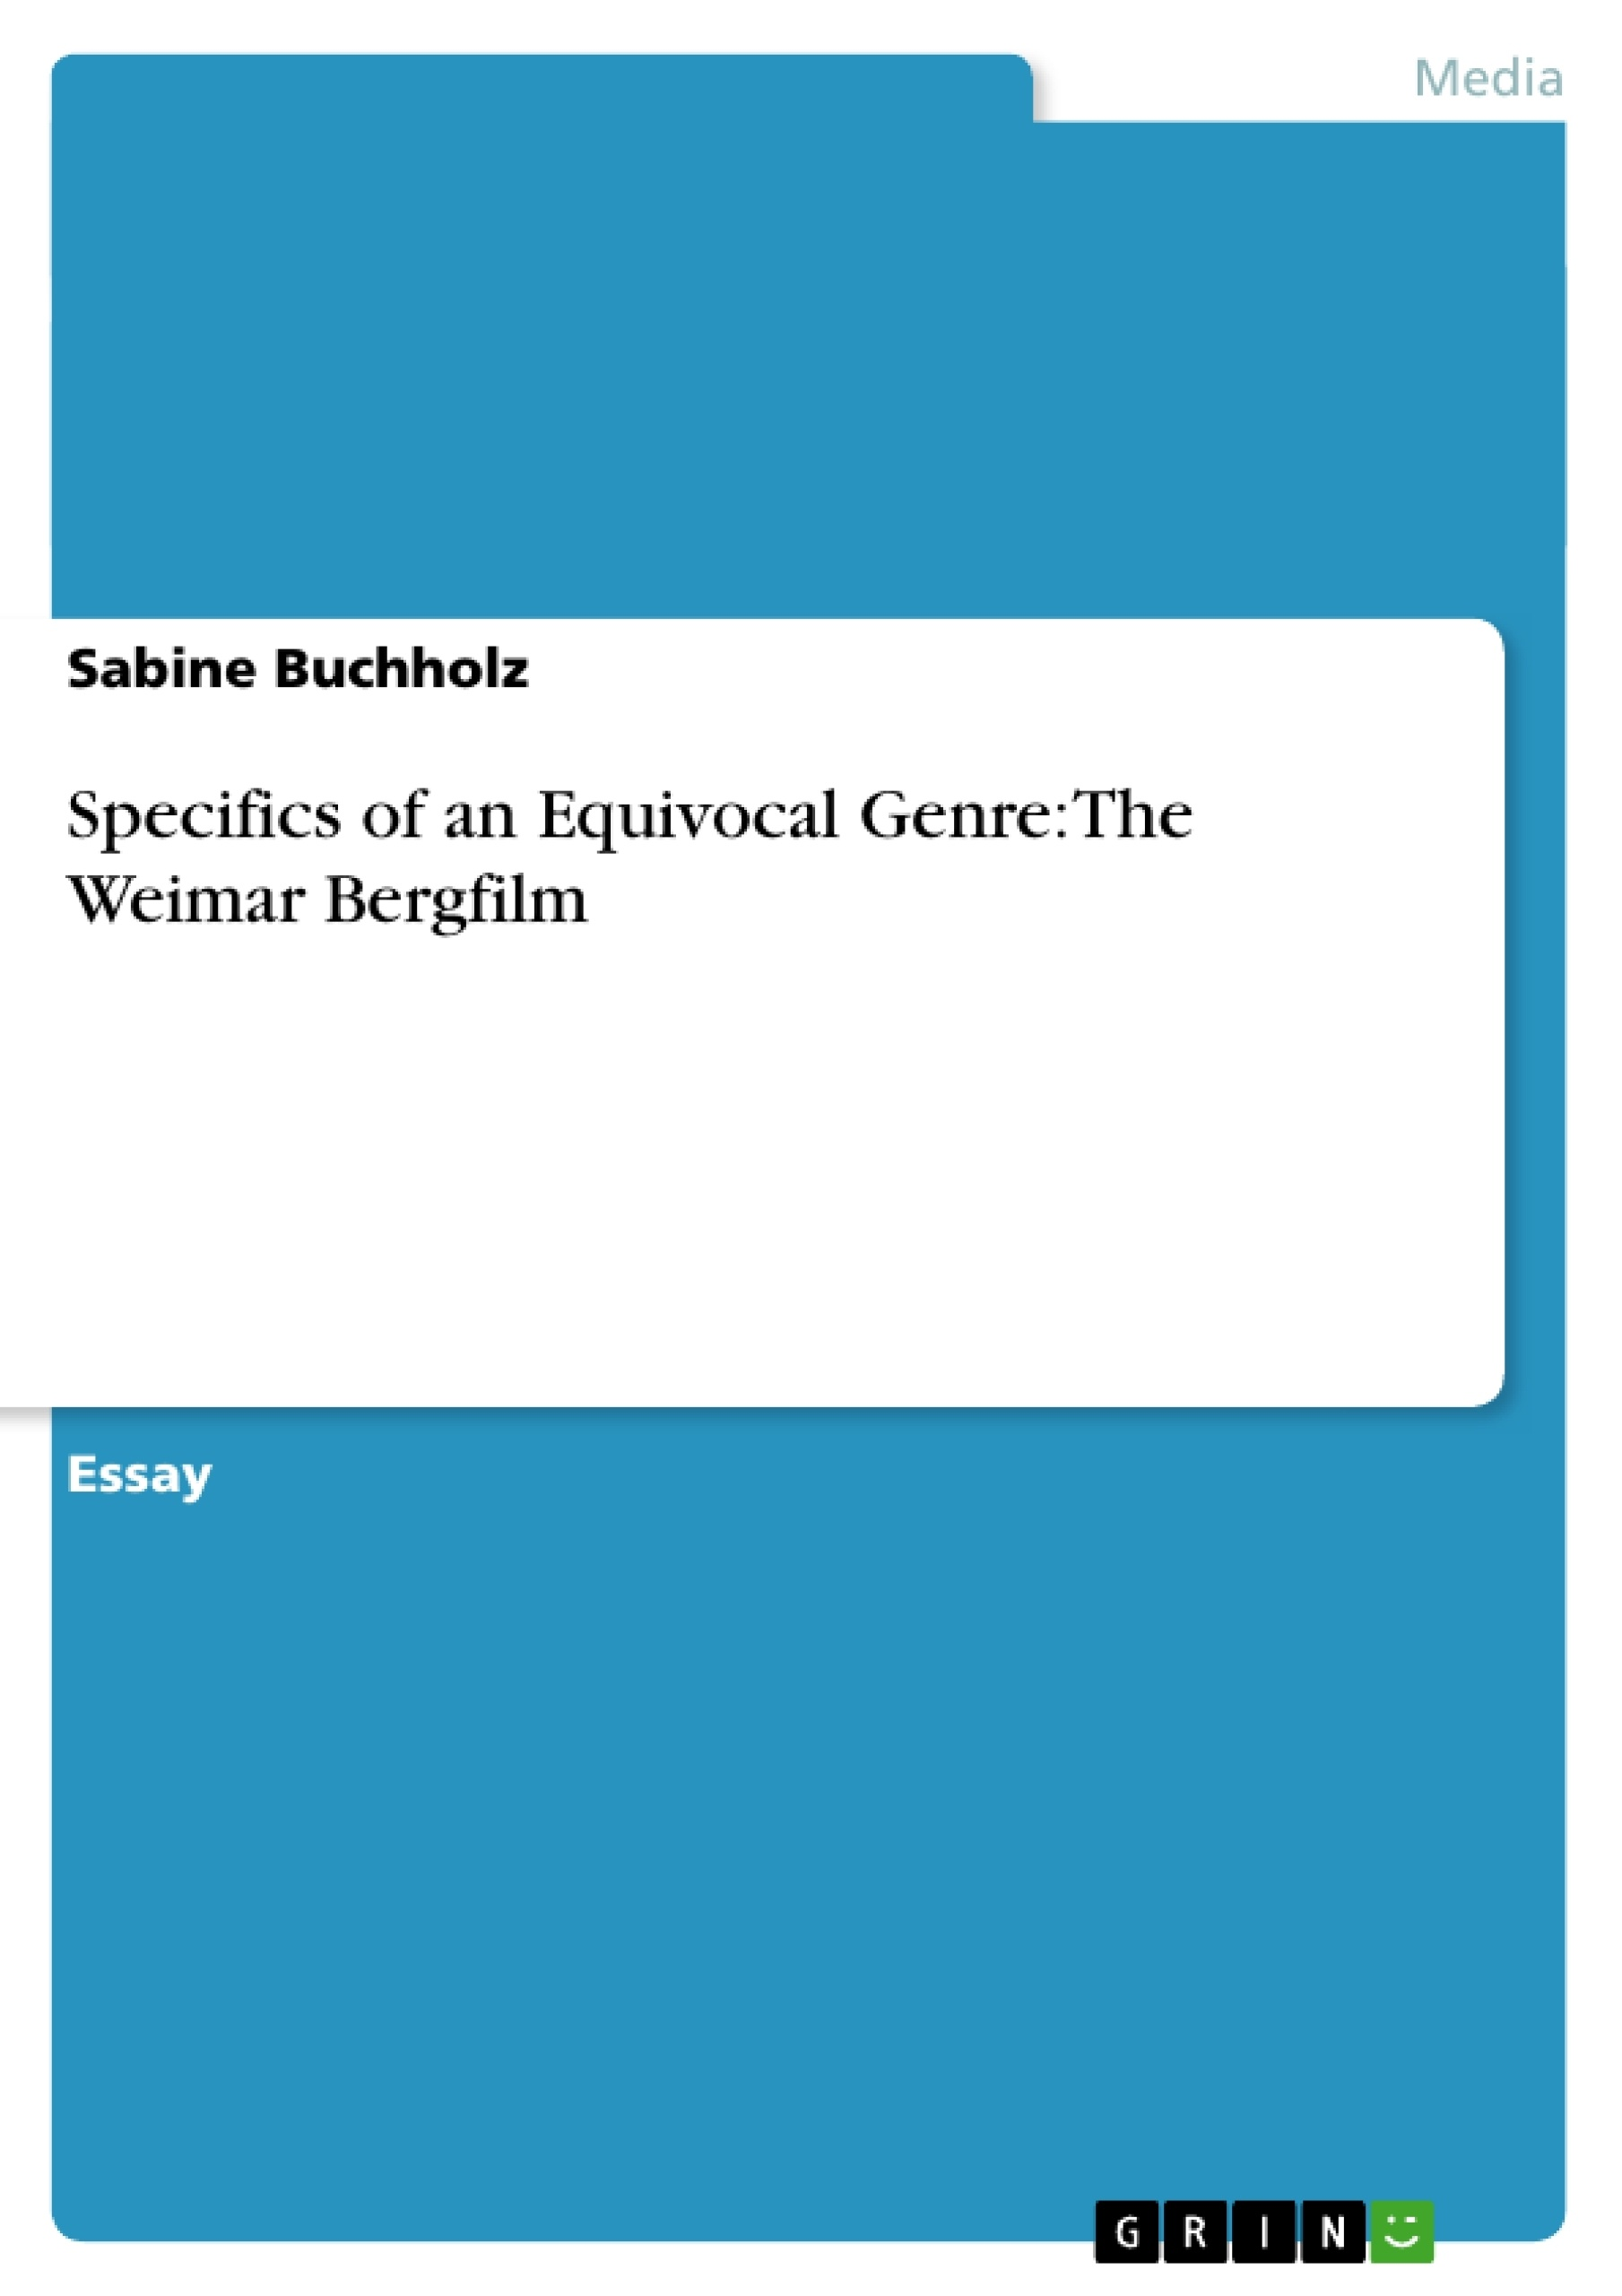 Title: Specifics of an Equivocal Genre: The Weimar Bergfilm